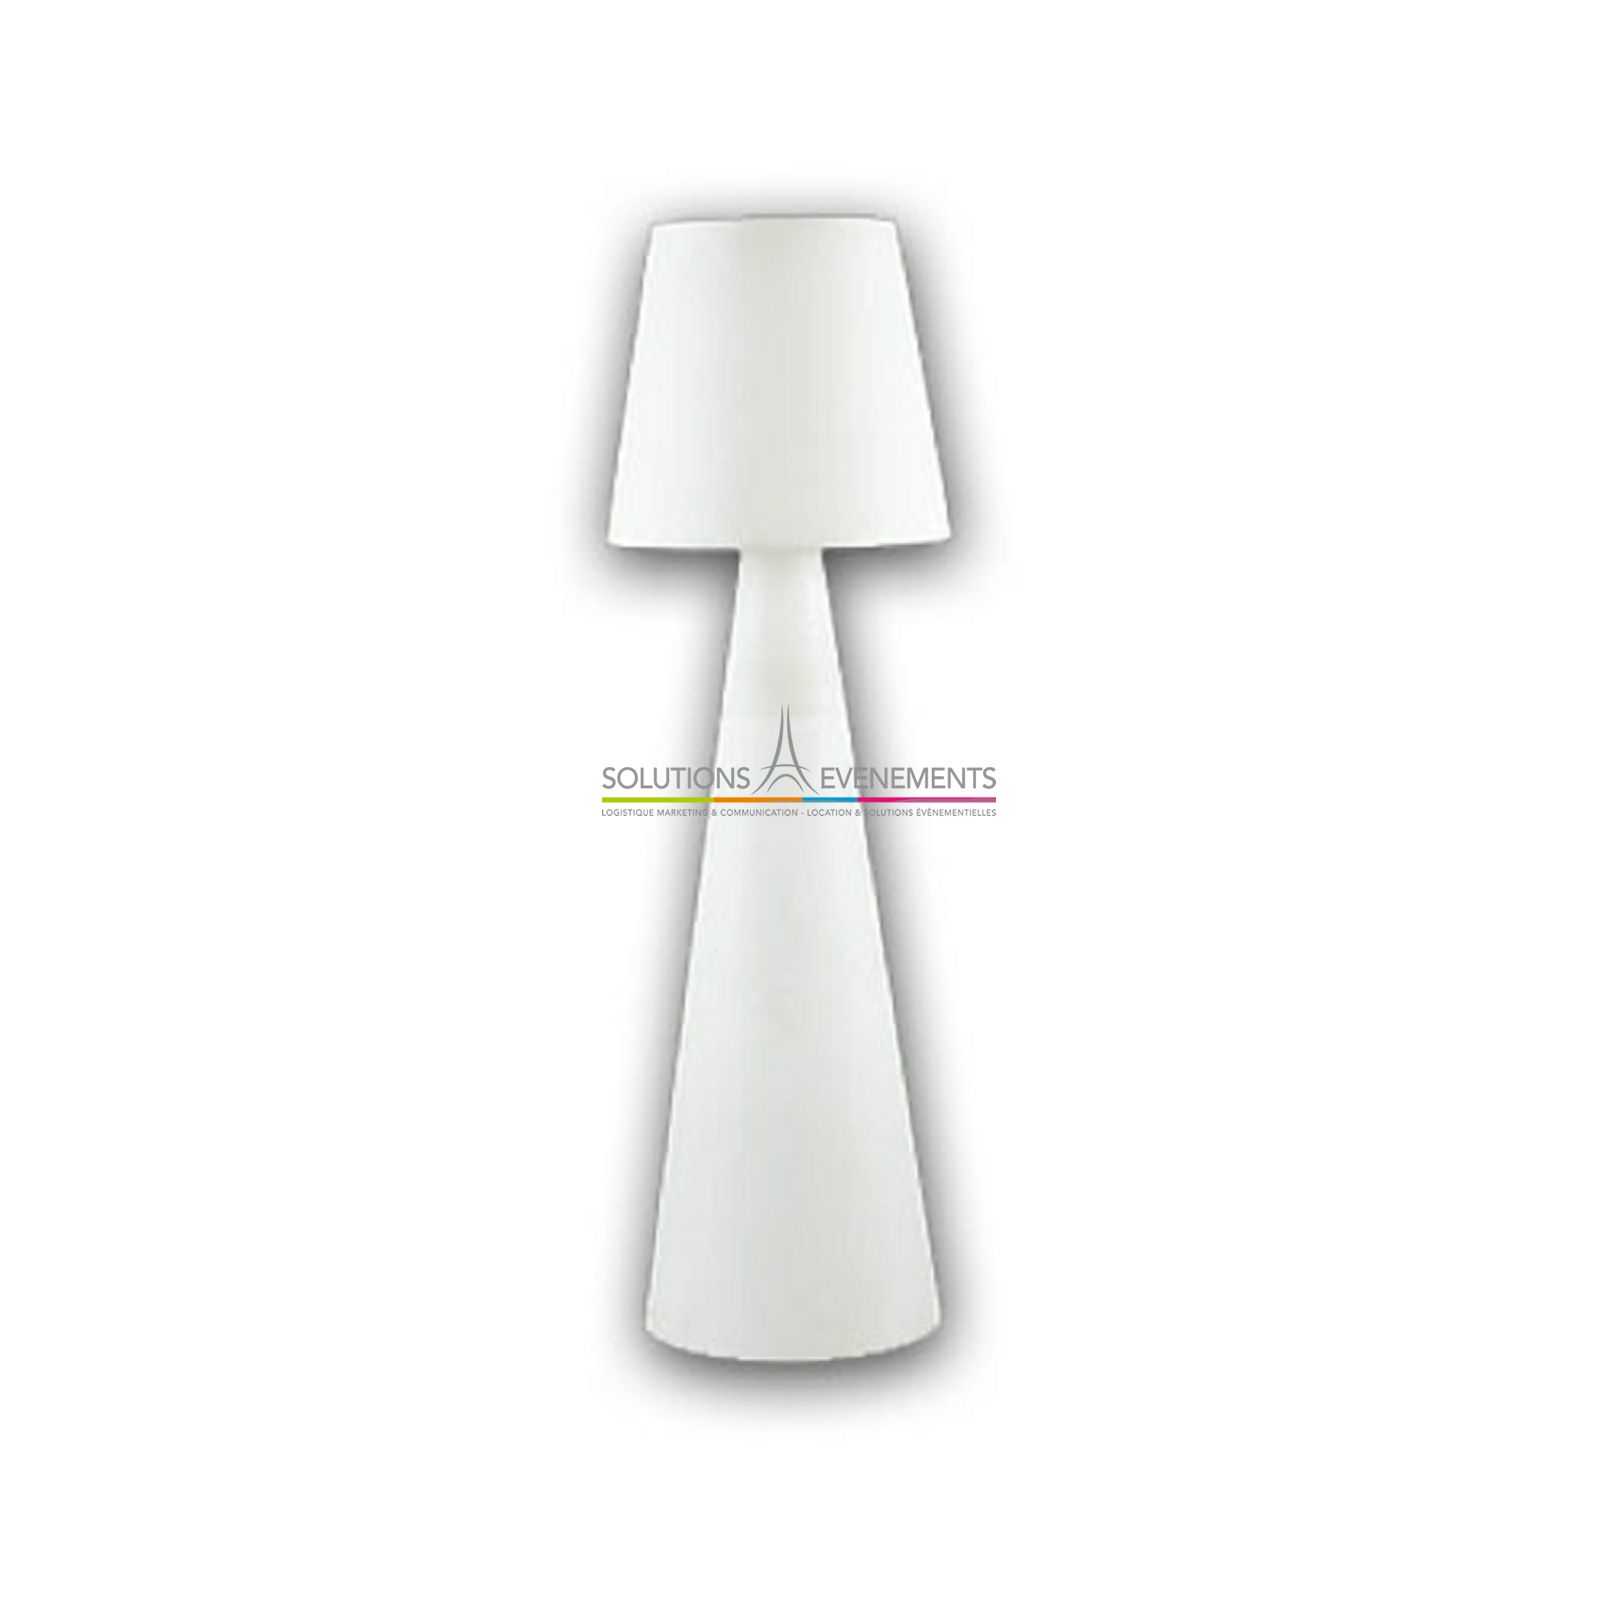 Colonne Lumineuse Ikea Excellent Lampadaire Lumineux Slide Pivot With Lampadaire